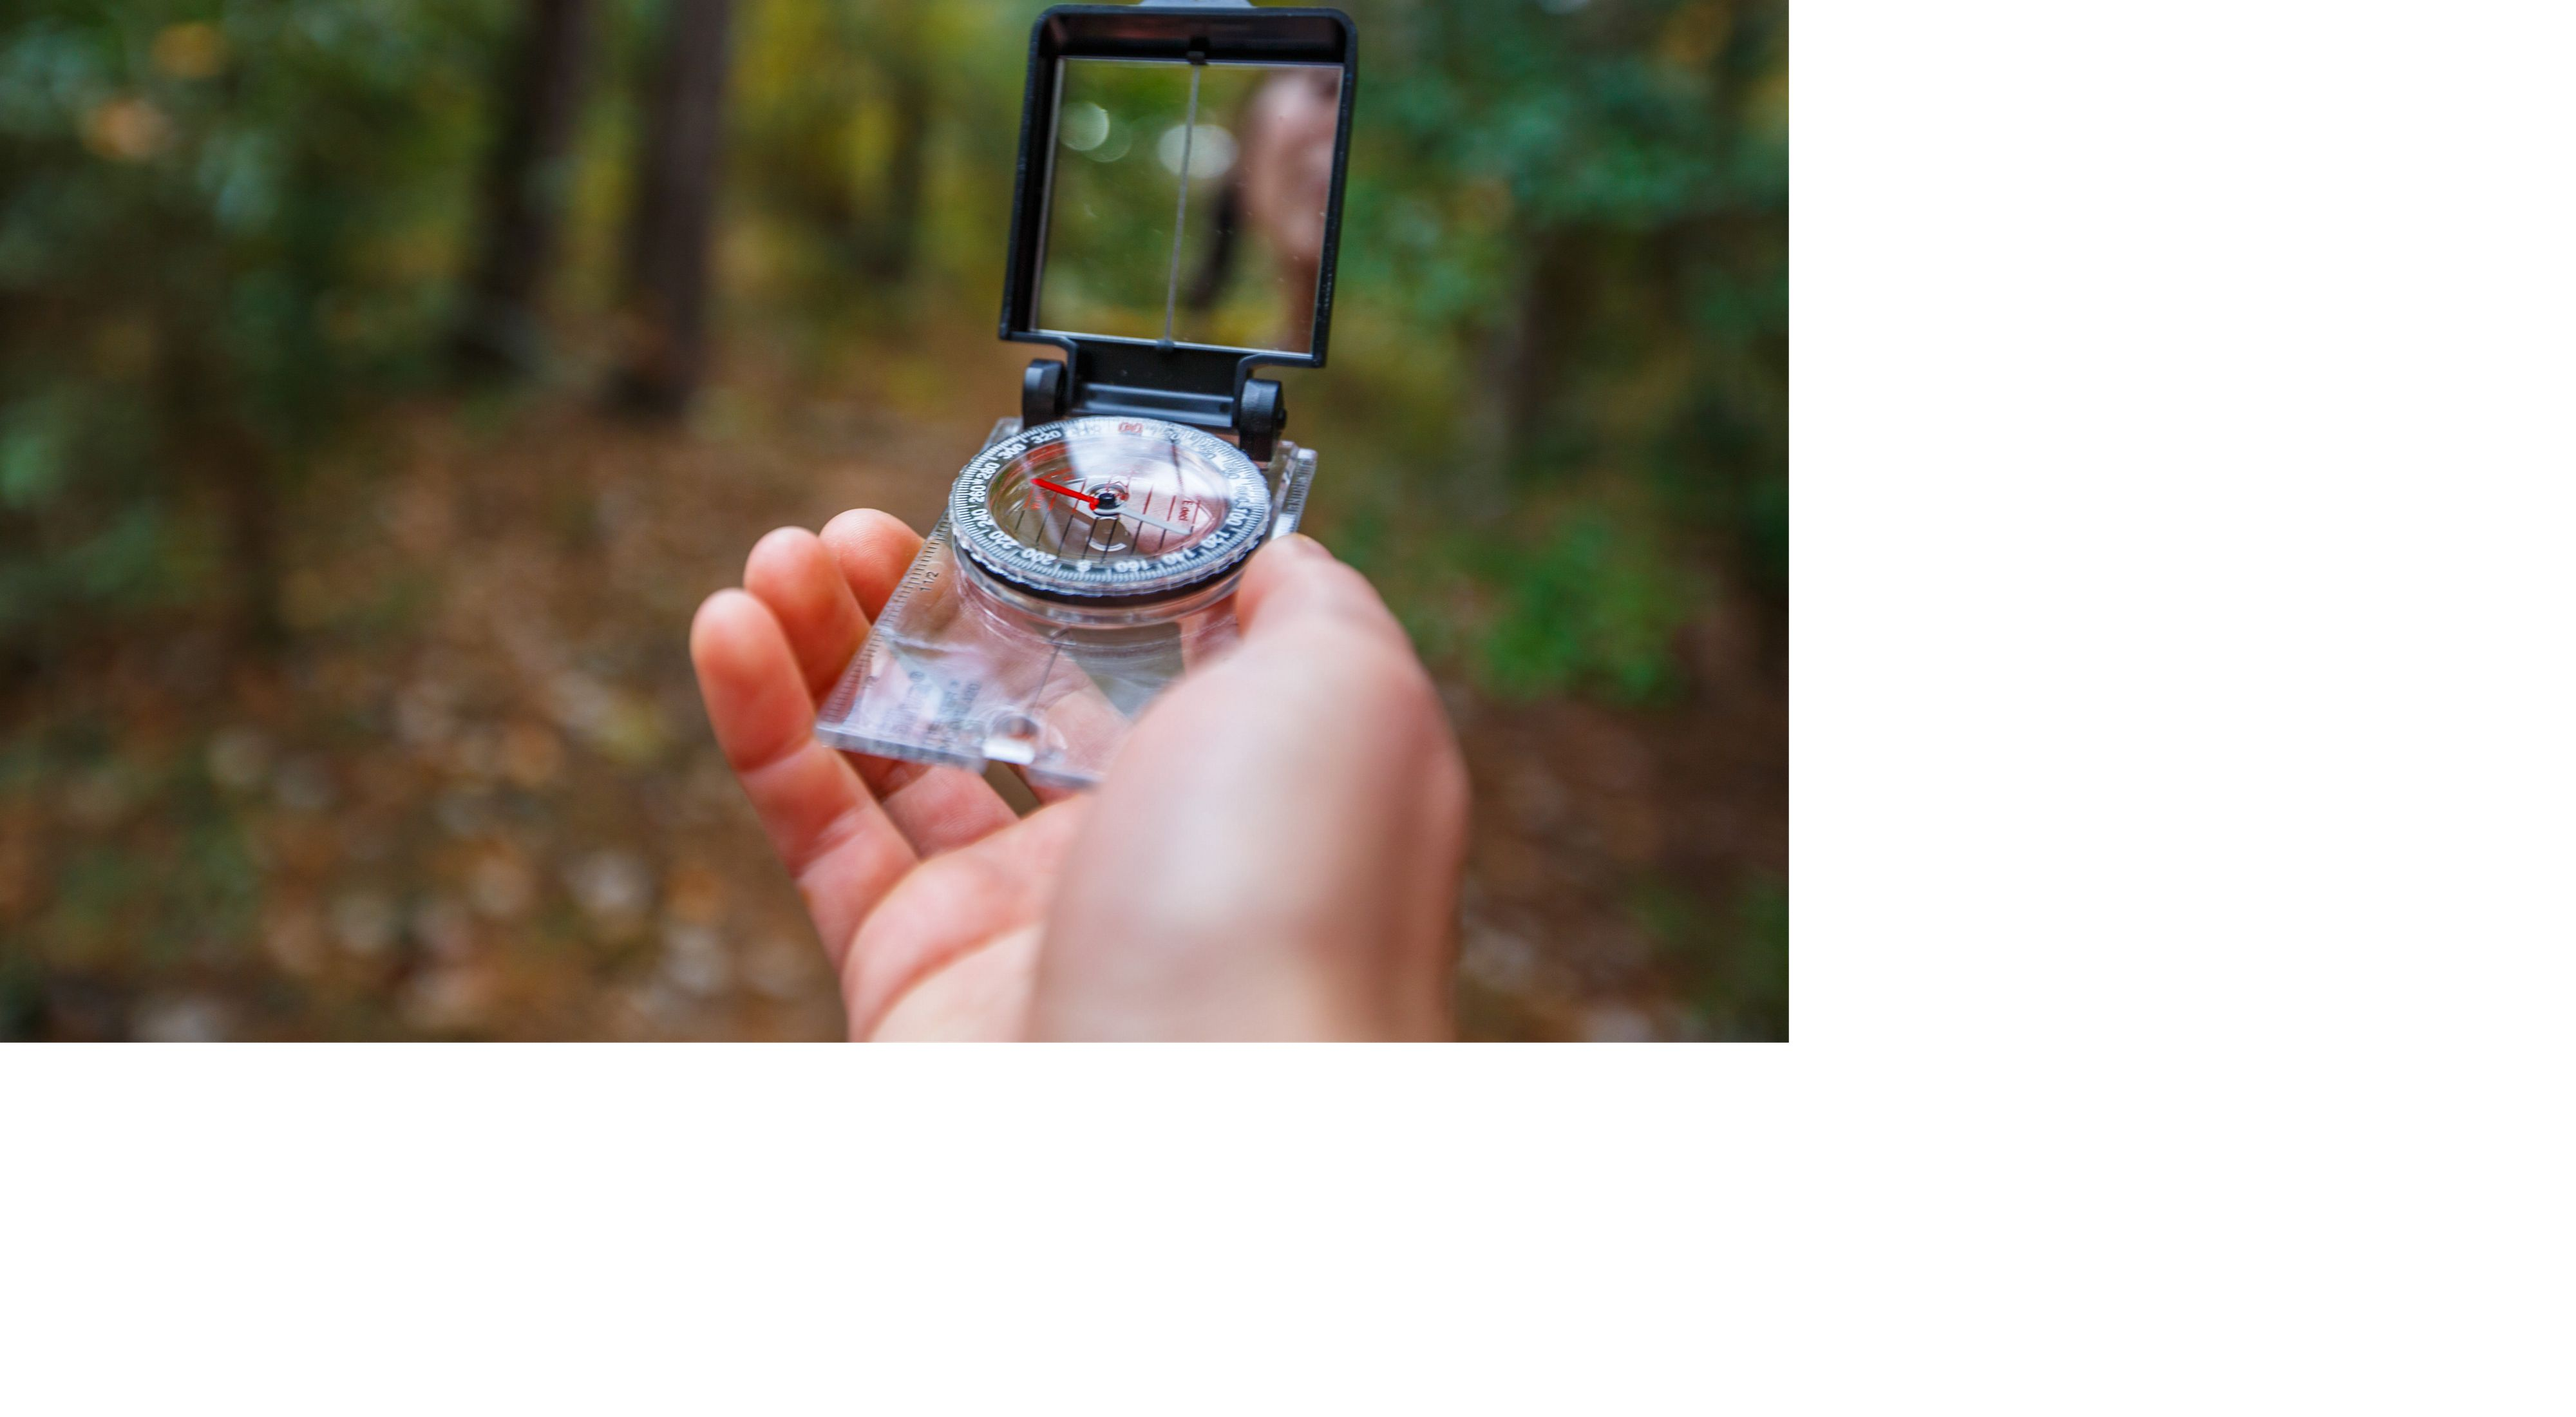 A hiker uses a compass while hiking in the woods.